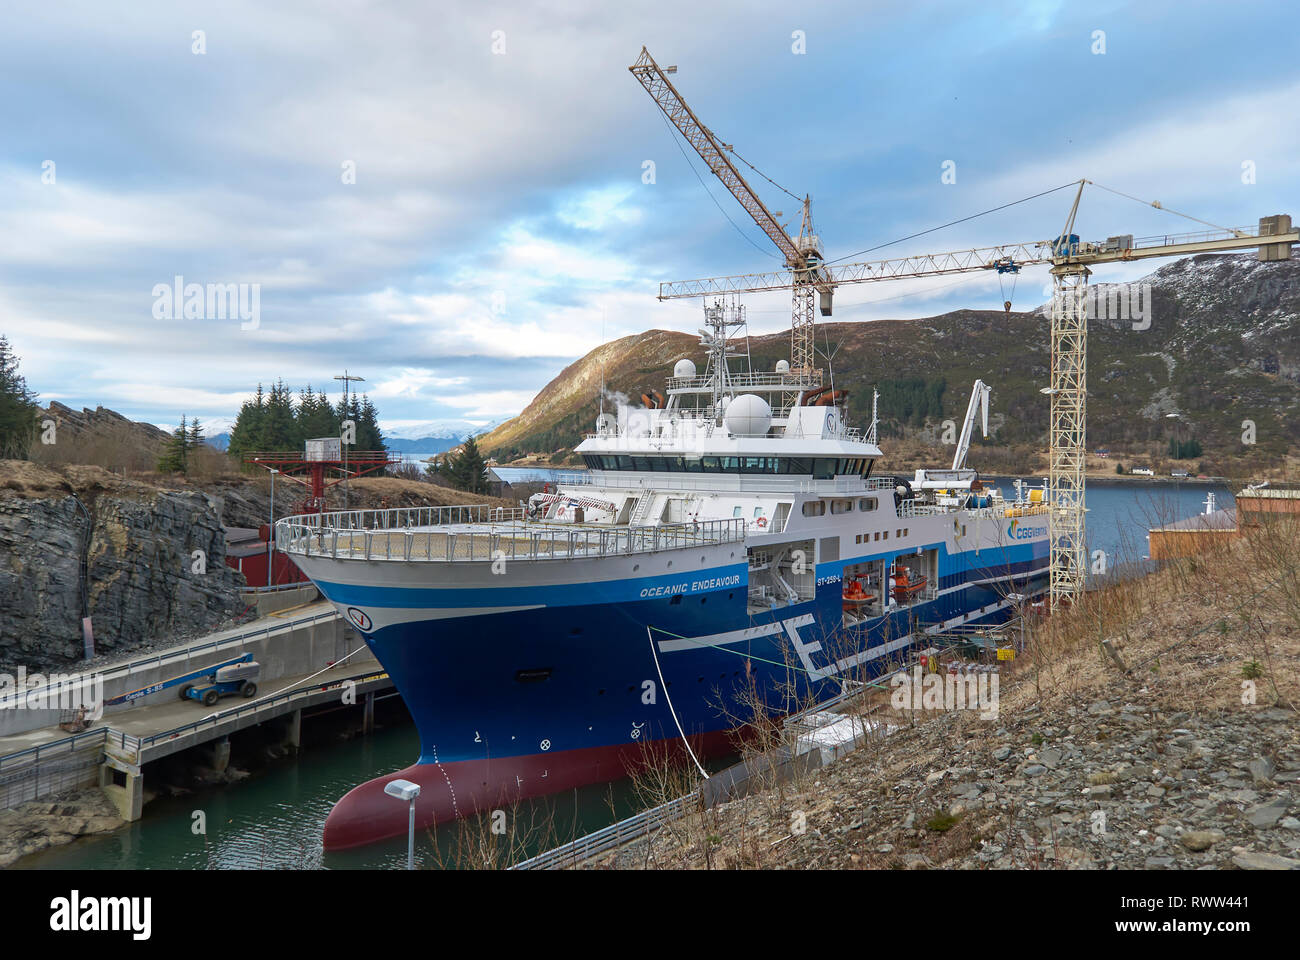 The Oceanic Endeavour sits in the flooded Dry Dock of the Batbygg Shipyard after its recent refit. Winter, Maloy, Norway - Stock Image